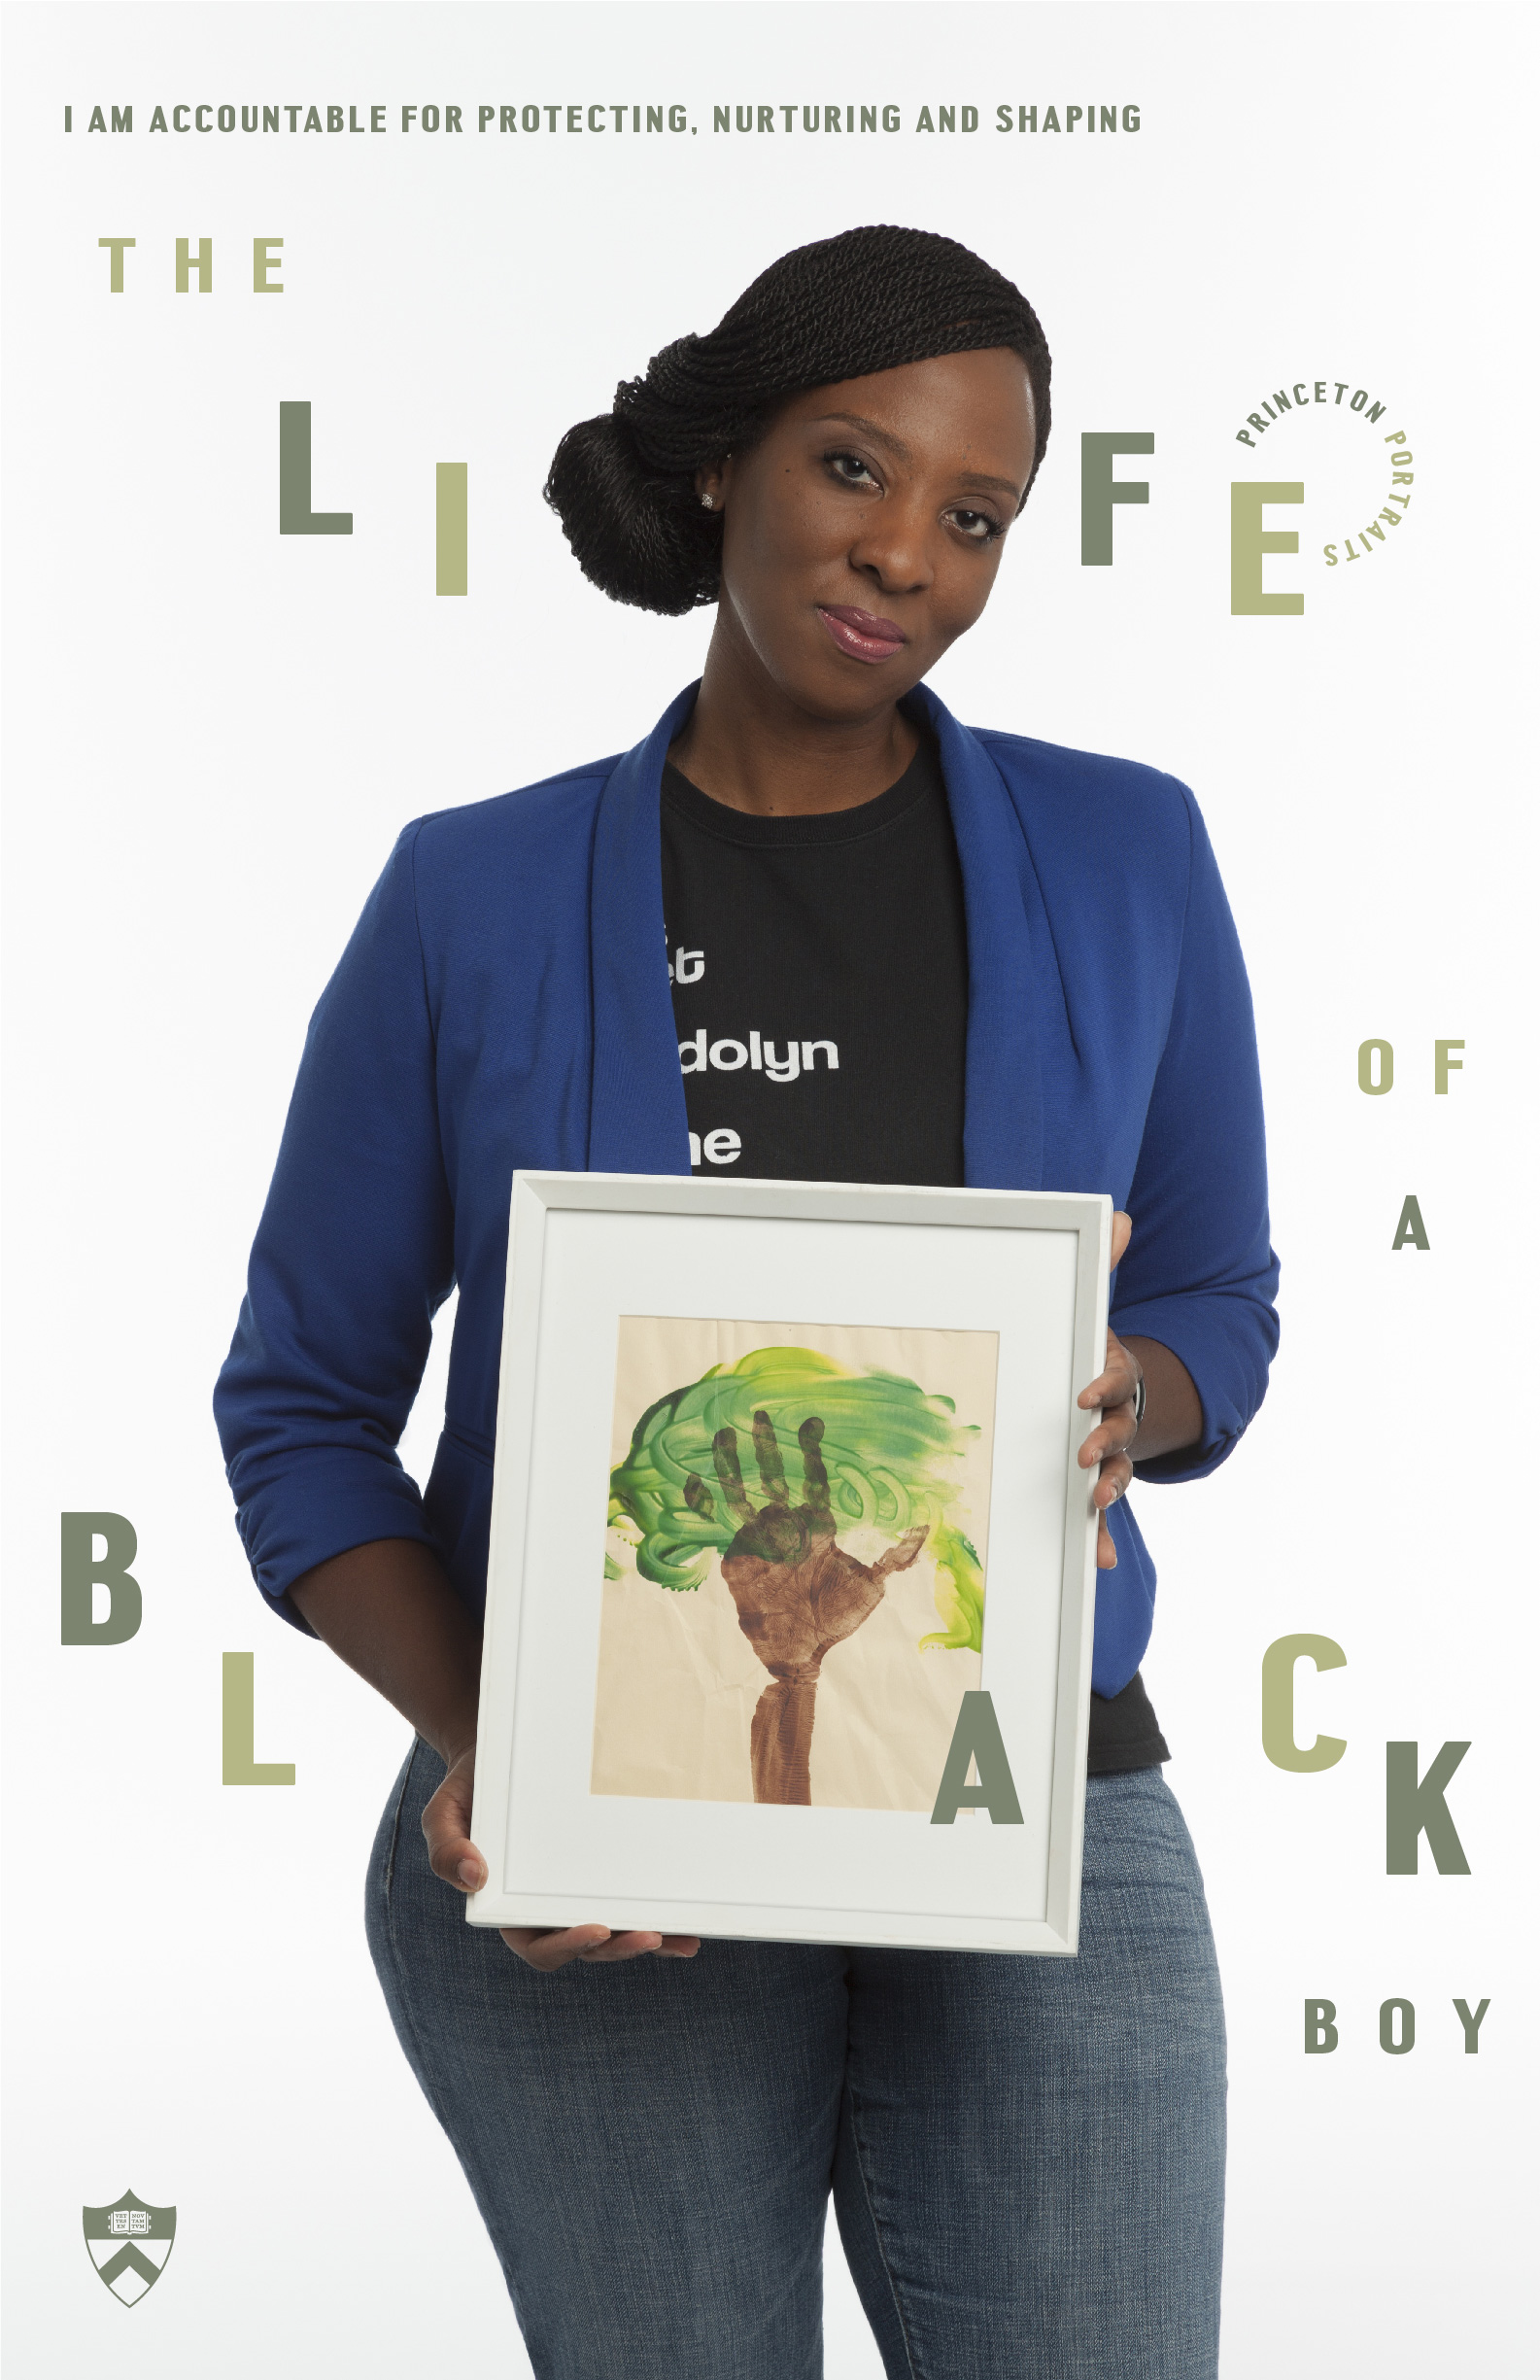 LaTanya Buck's poster, download available PDF for full story.